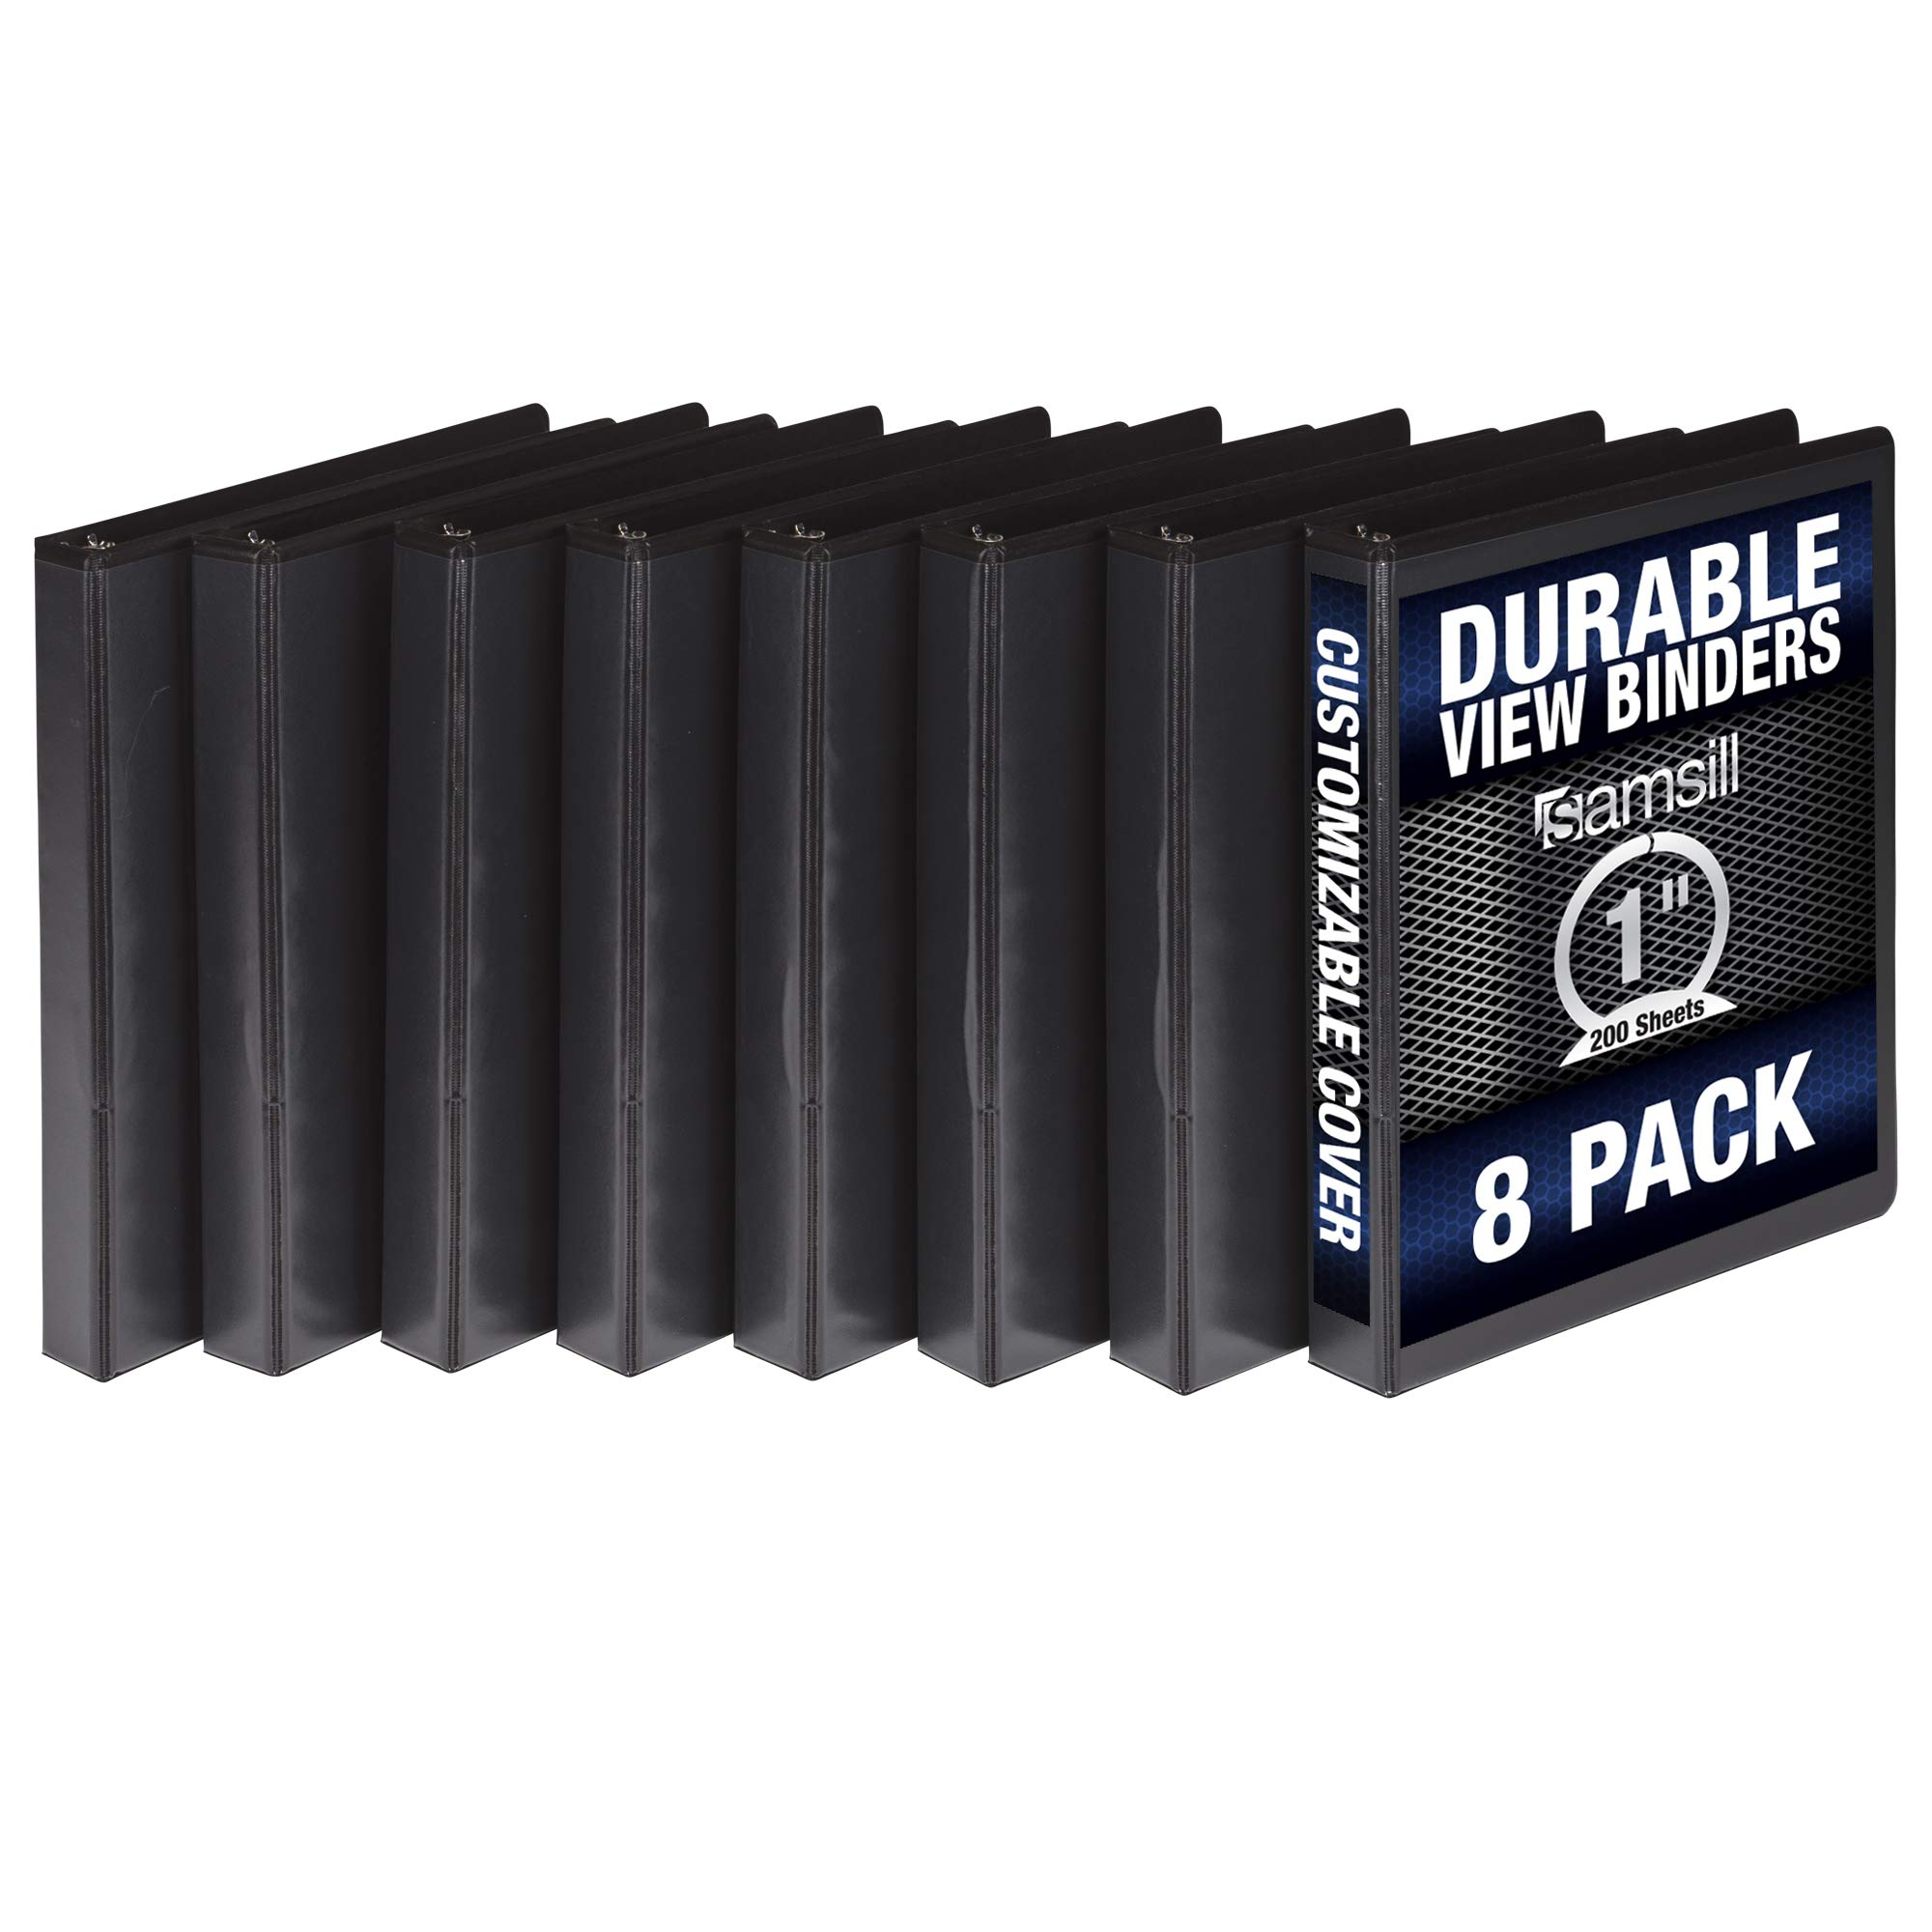 Samsill S88430 3 Ring Durable View Binders - 8 Pack, 1 Inch Round Ring, Non-Stick Customizable Clear Cover, Black by Samsill